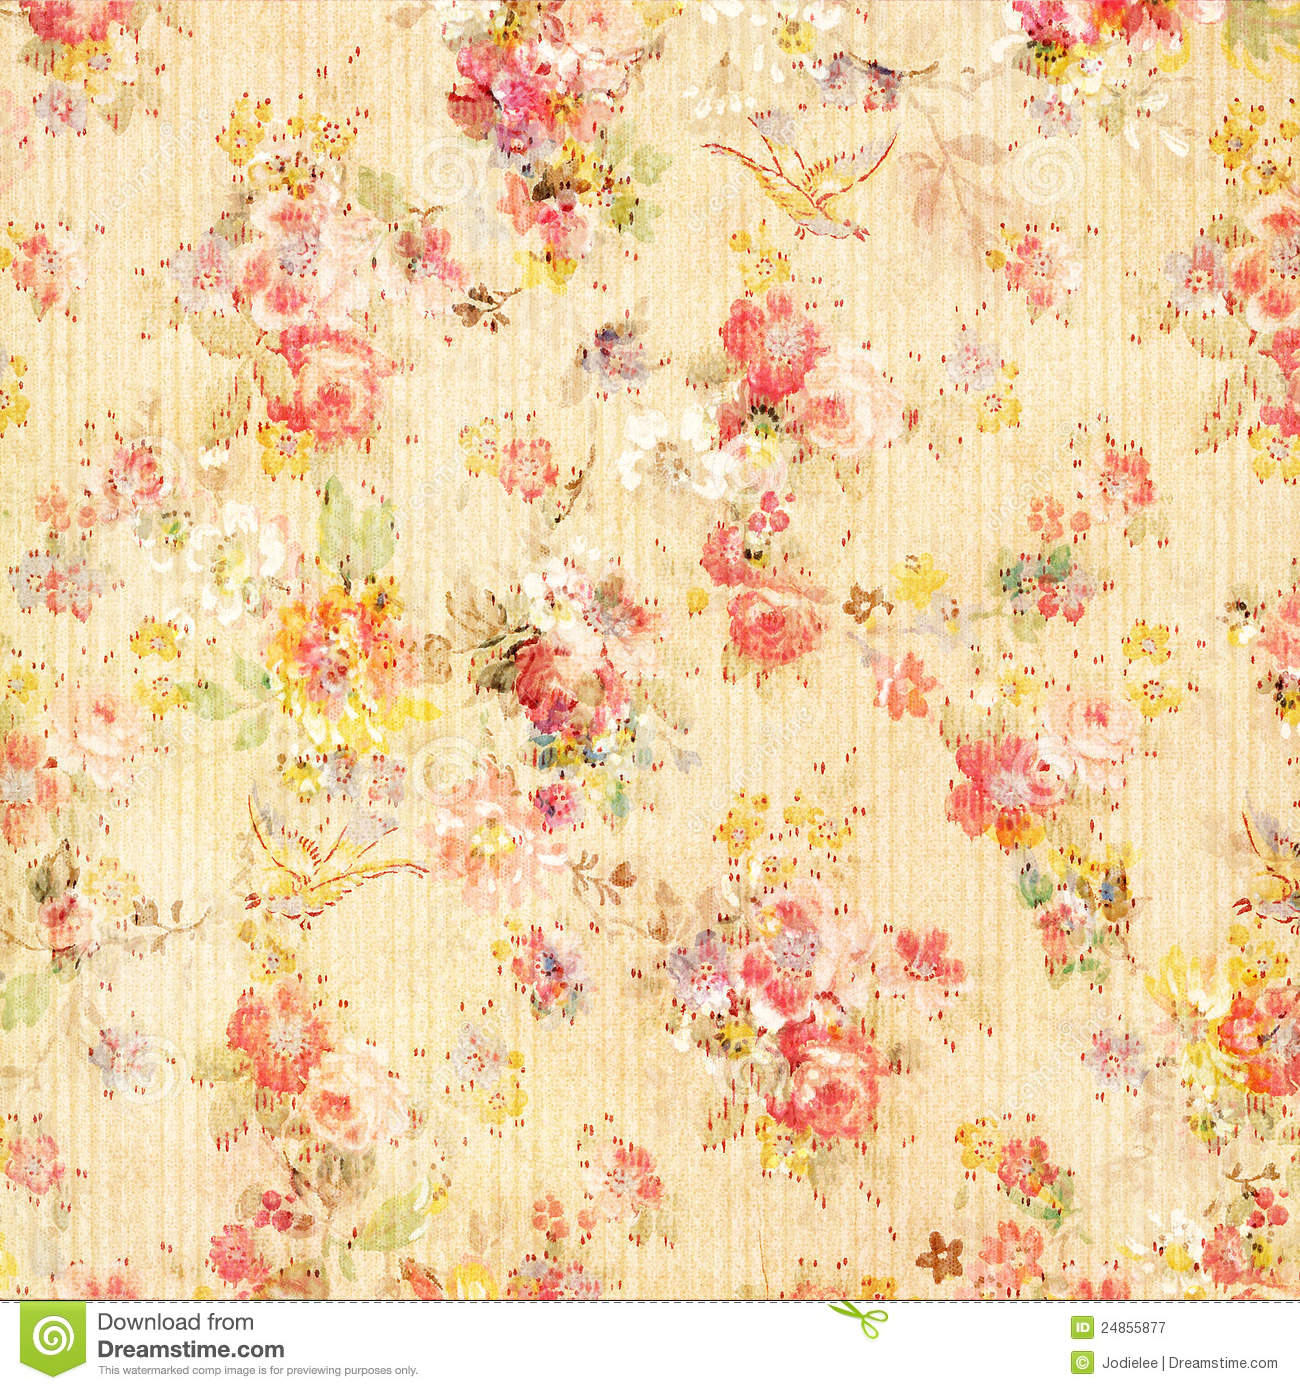 Shabby Chic Vintage Antique Rose Floral Wallpaper Stock Image